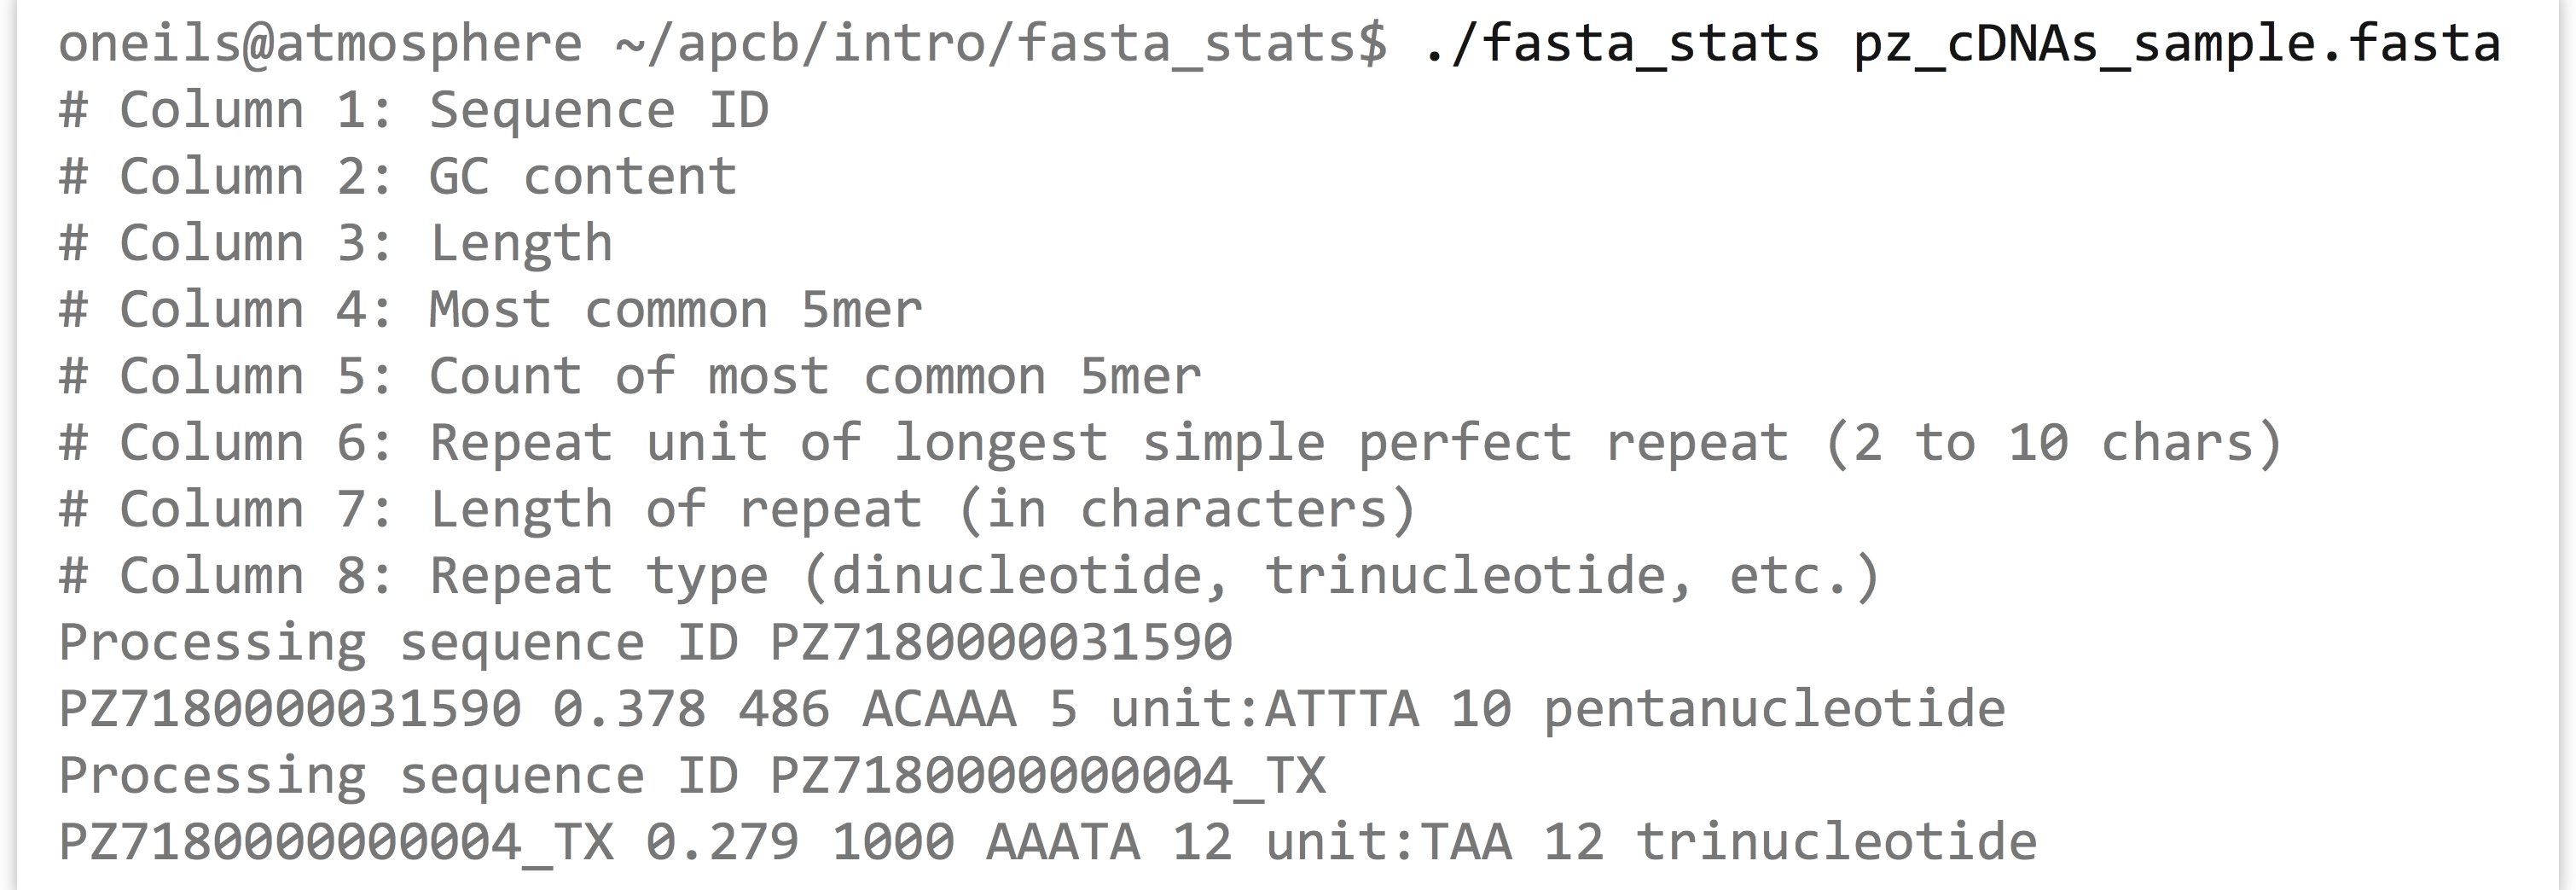 I.8_2_unix_96_fasta_stats_sample